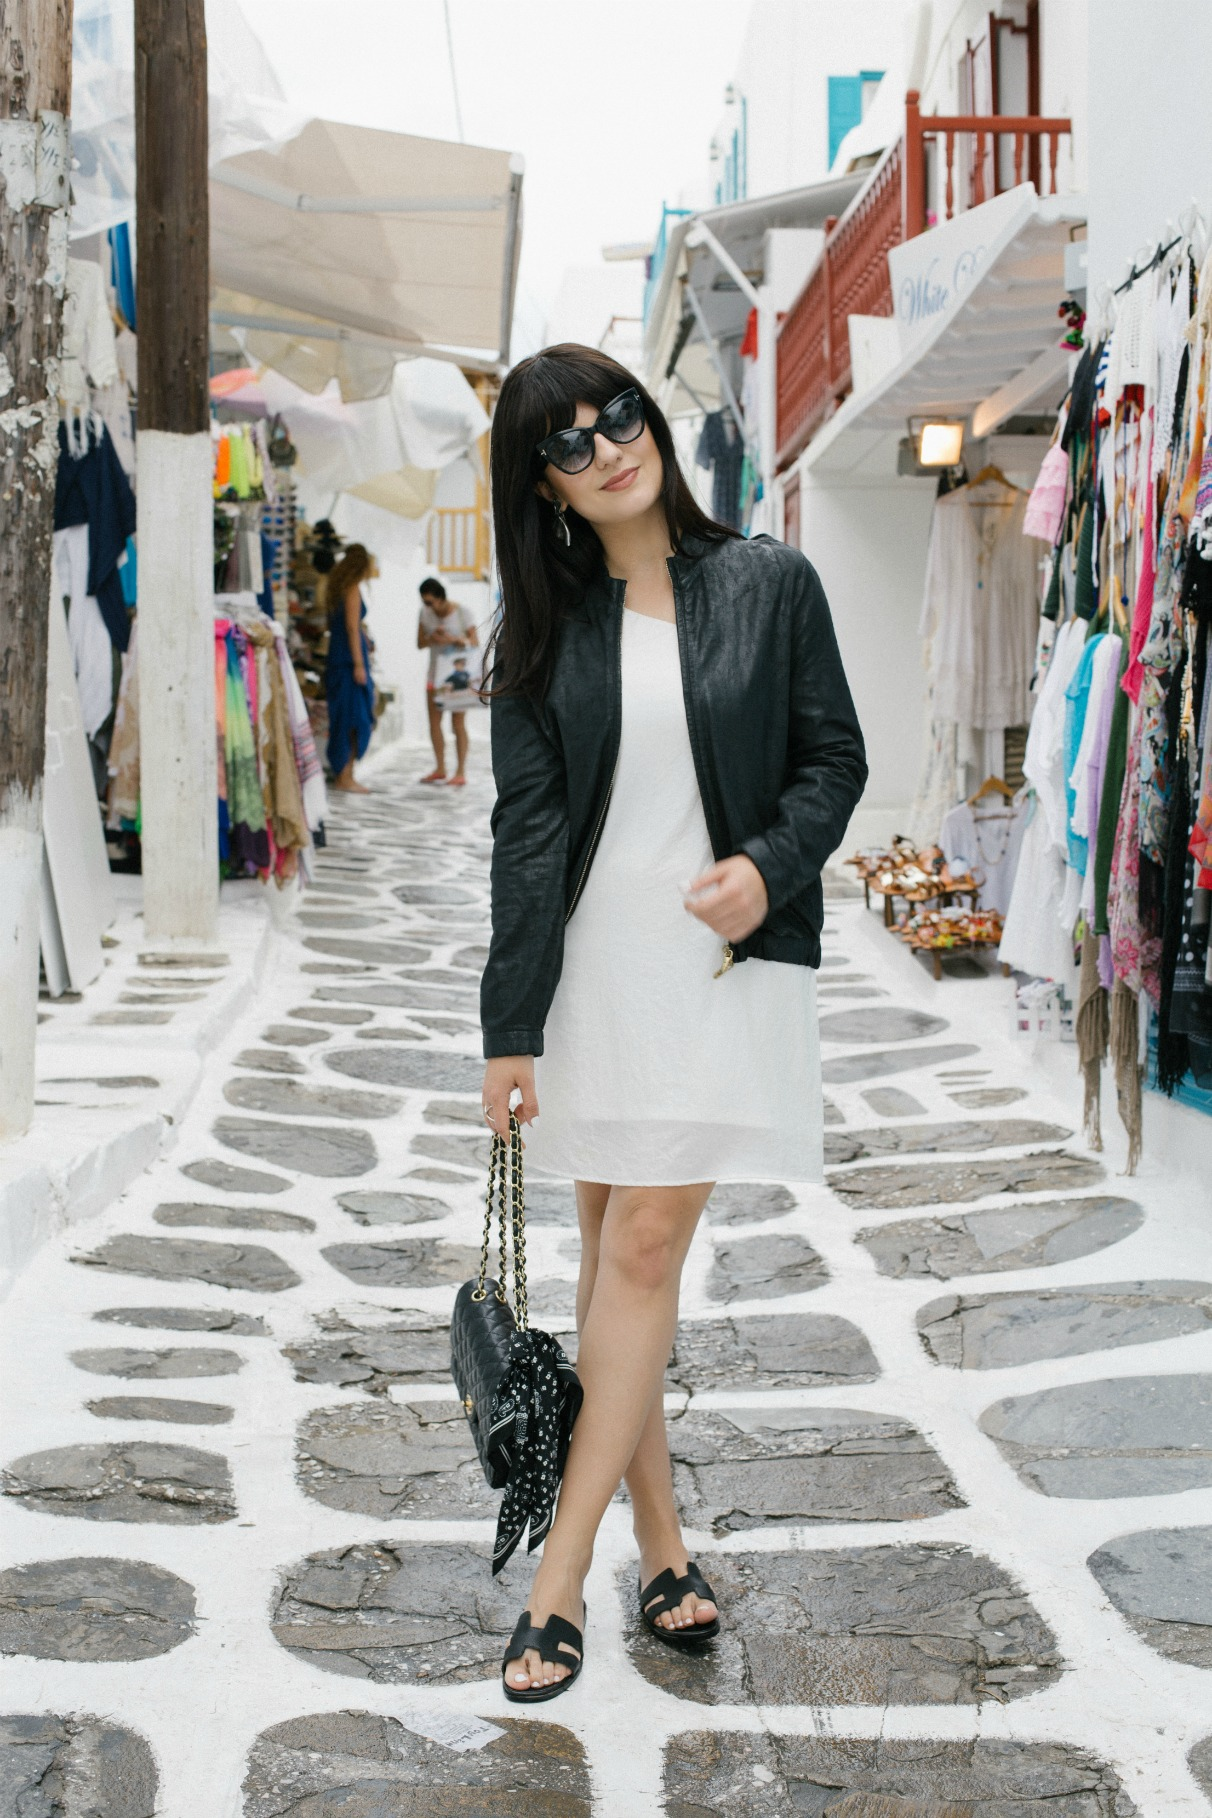 manila-grace-black-white-dress-bomber-jacket-mykonos-town-2016-disi-couture-03